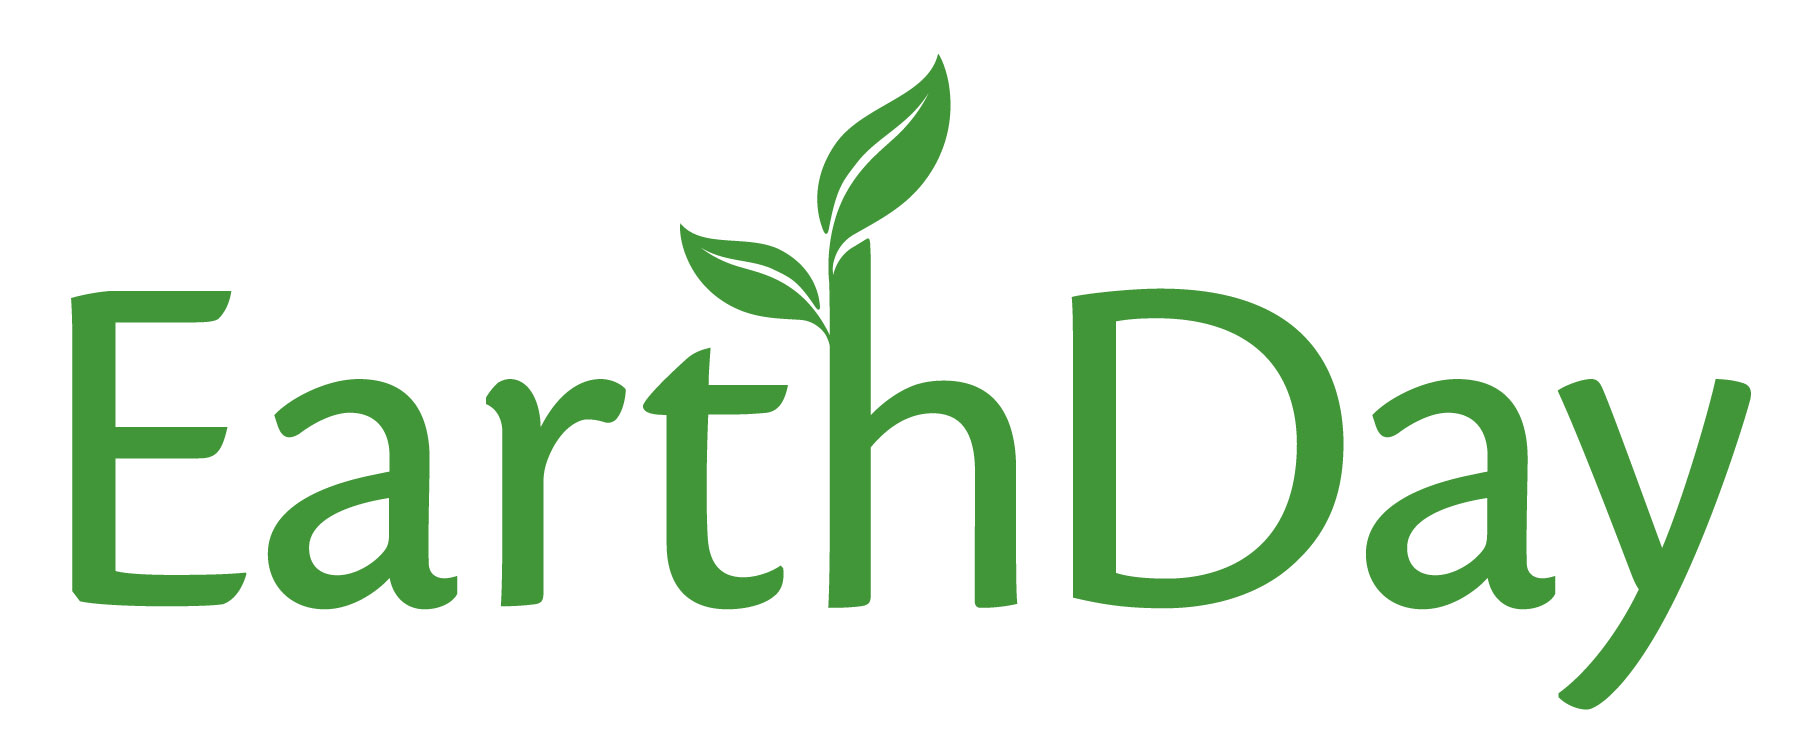 Earth Day is this Saturday, April 22 !